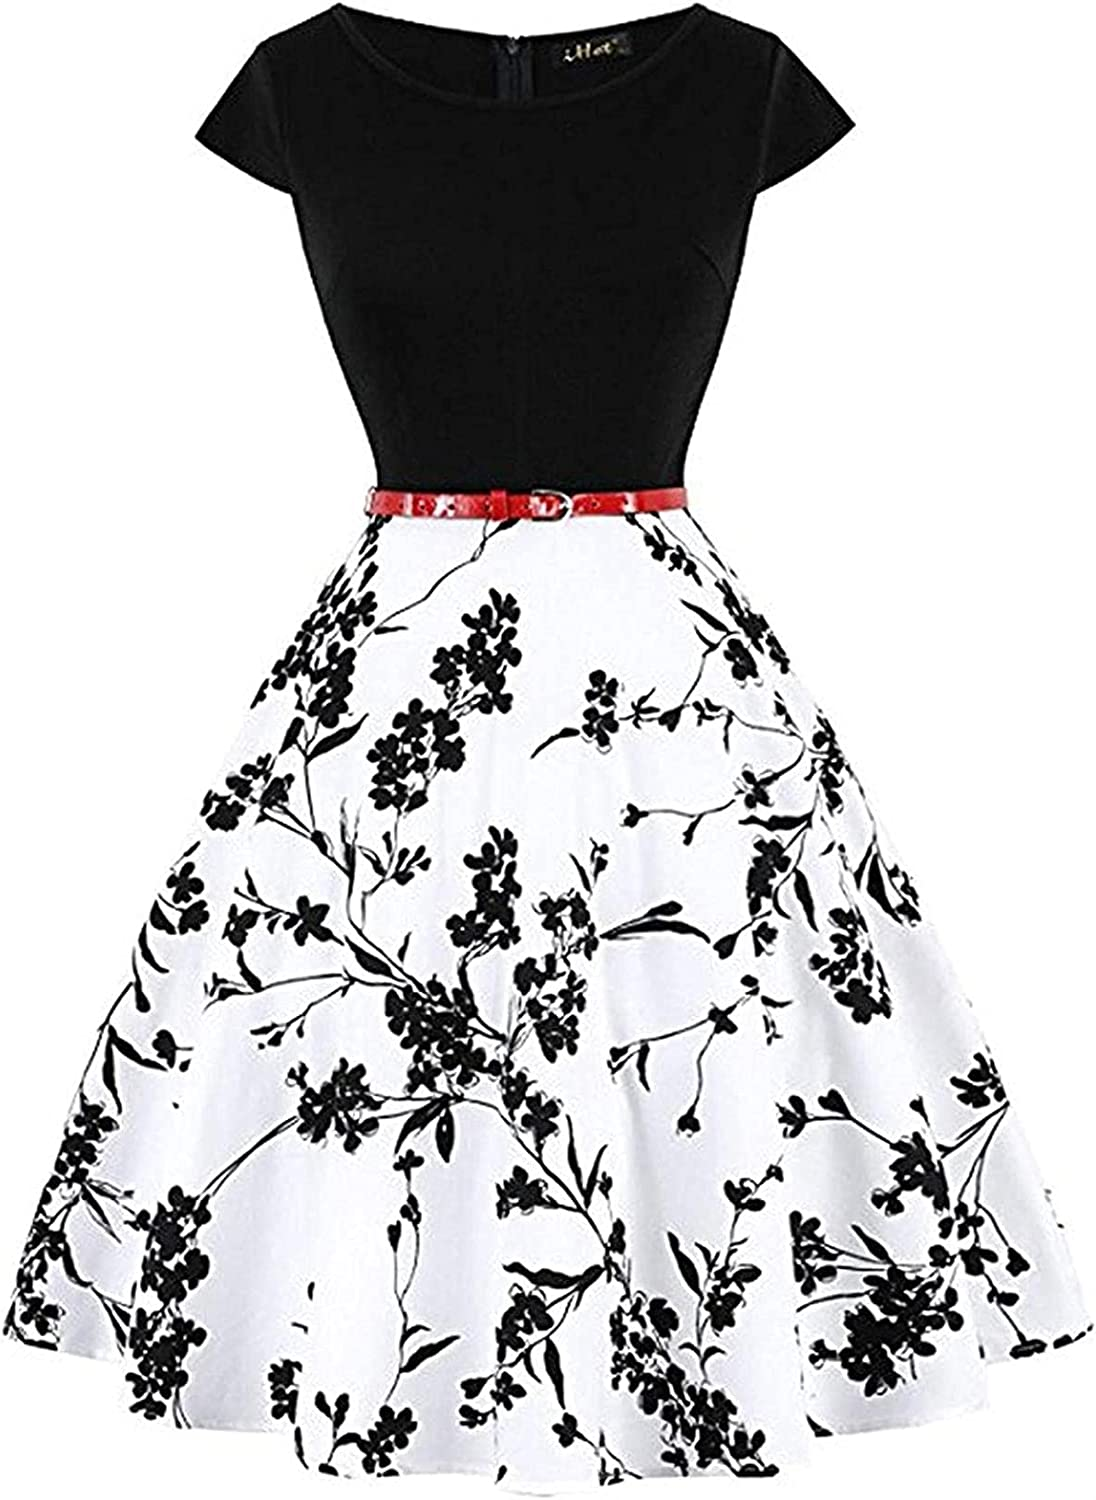 Women's Vintage Patchwork Floral Midi Dress Casual Party Cocktail Swing A Line Dresses with Belt